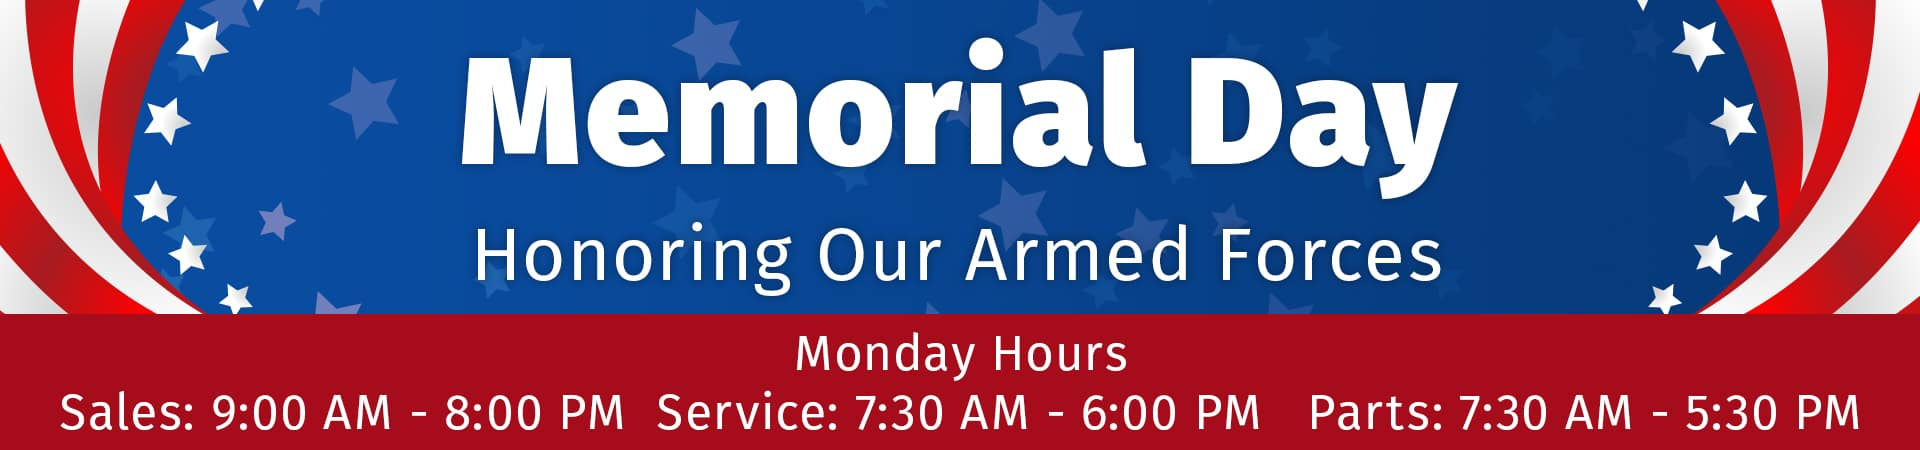 Honoring our armed forces this Memorial Day in Murfreesboro TN